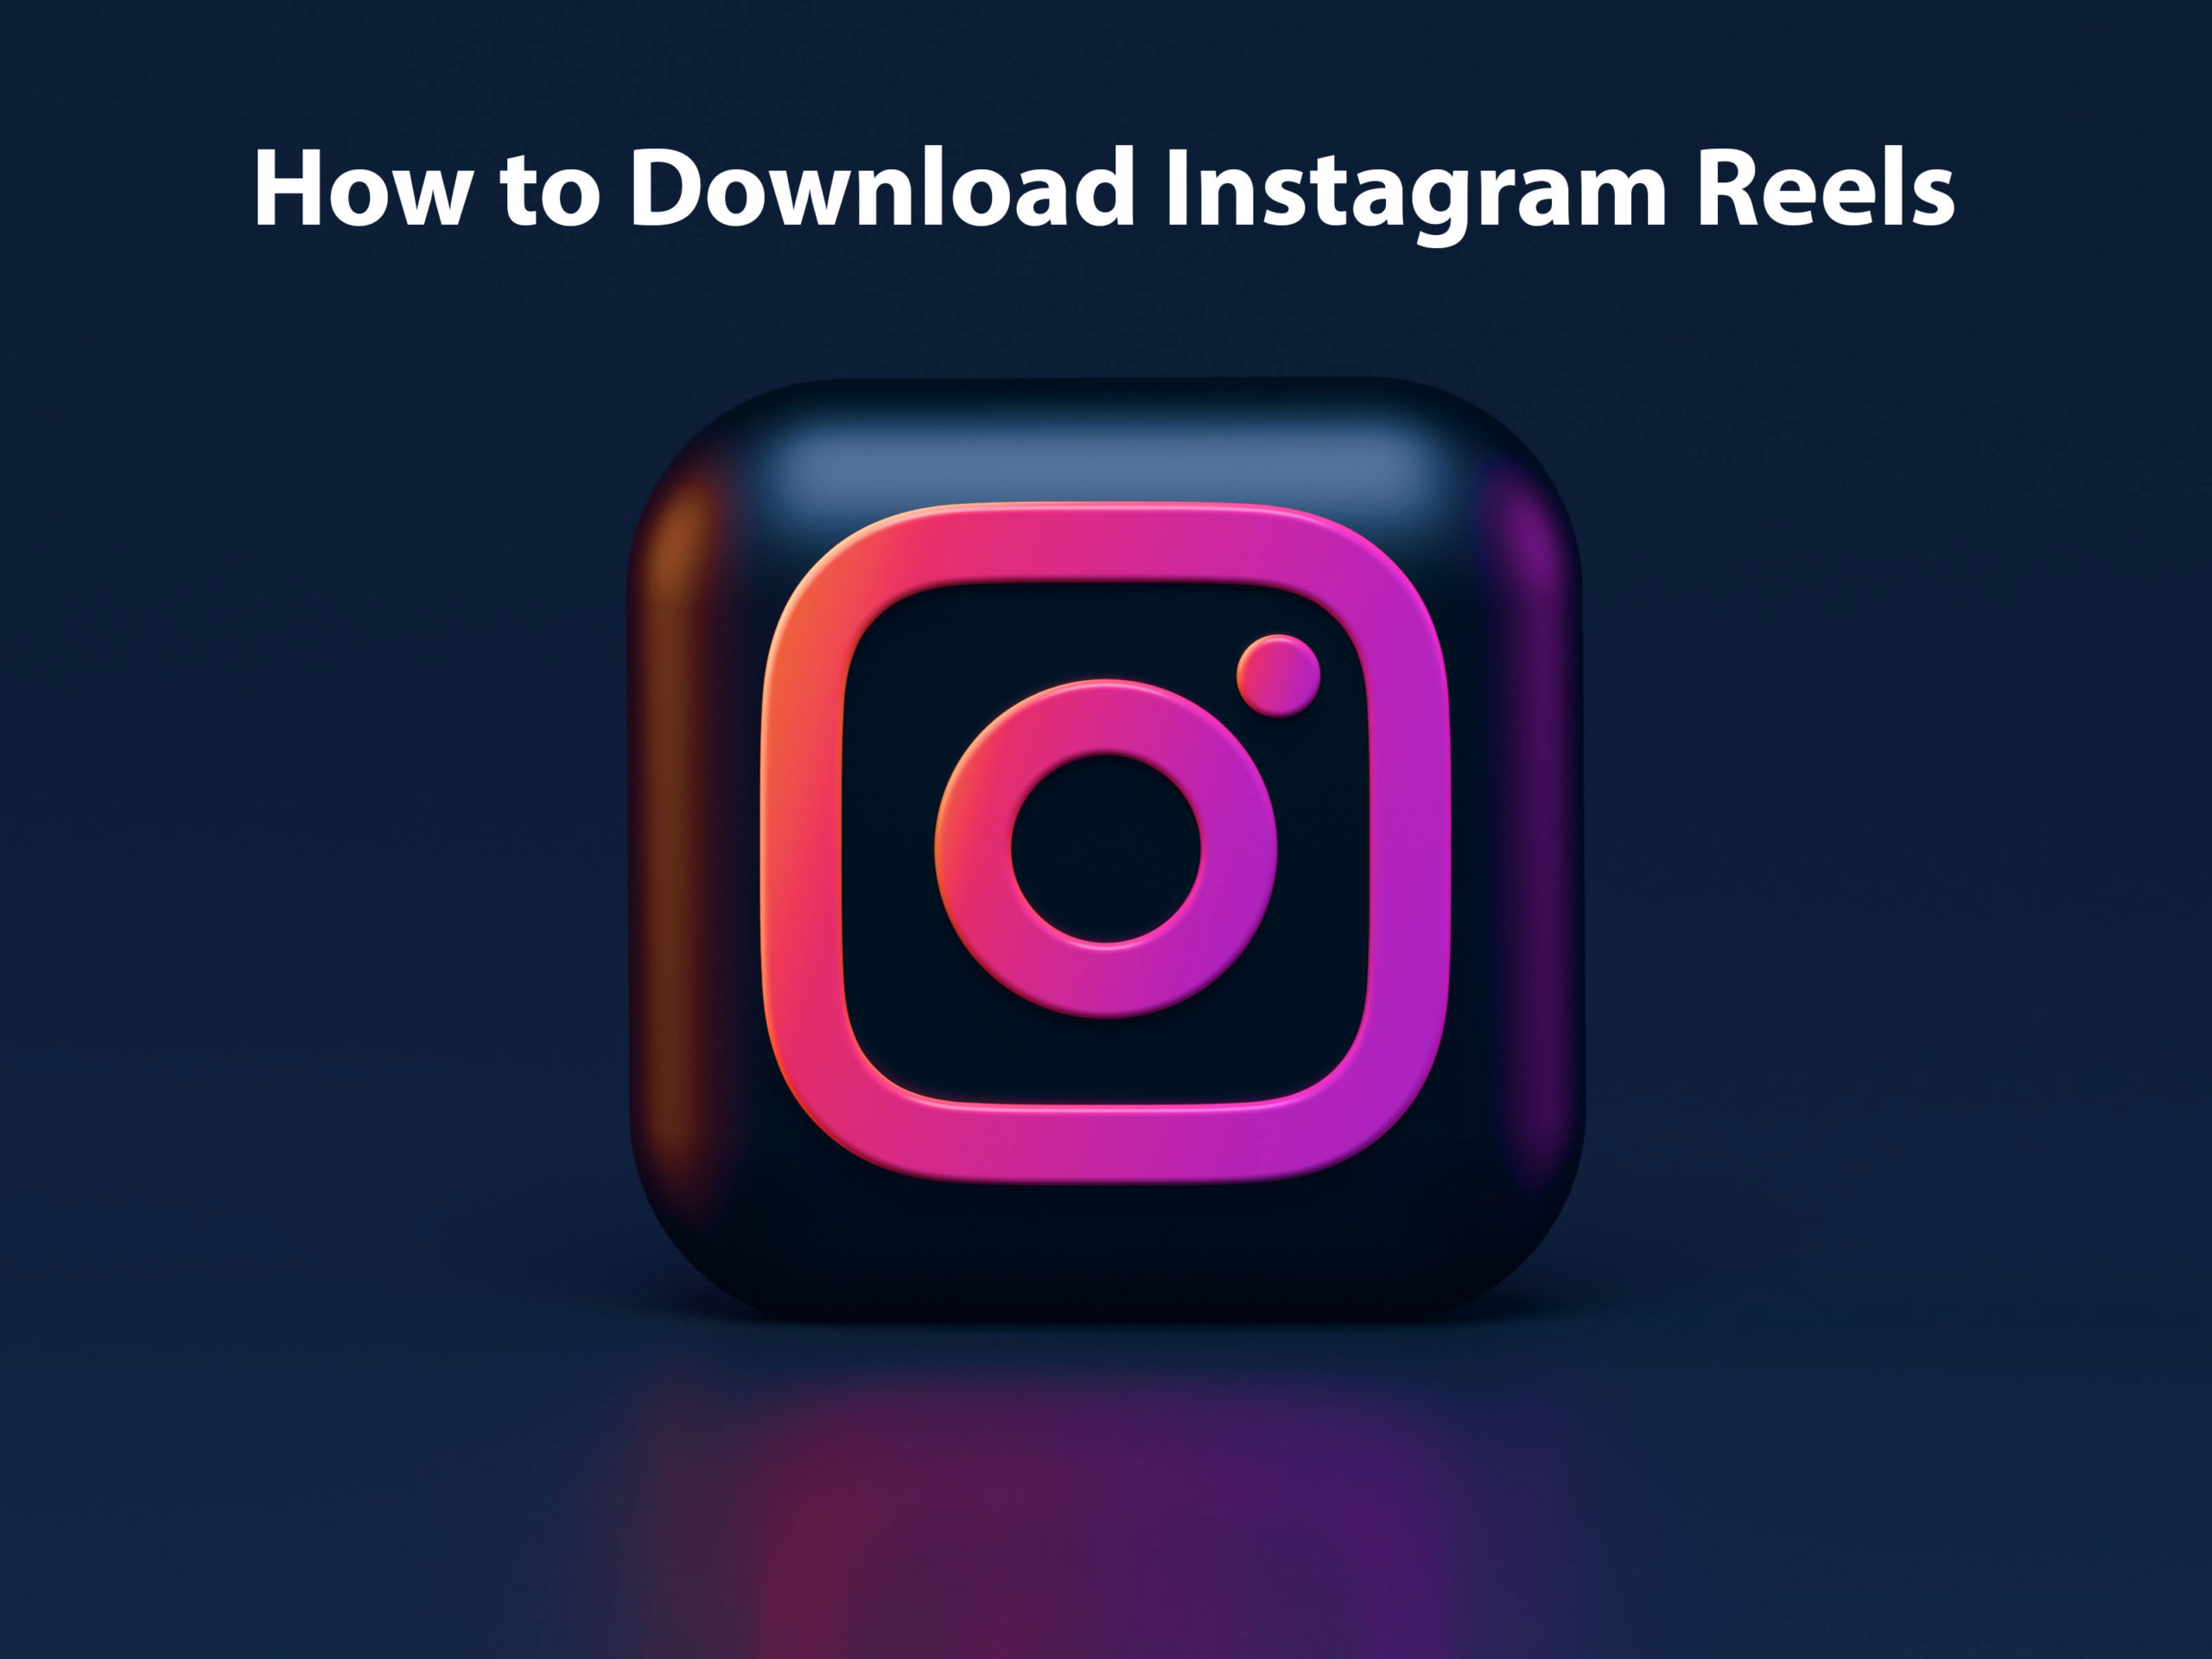 How to Download Instagram Reels on Android and iPhone